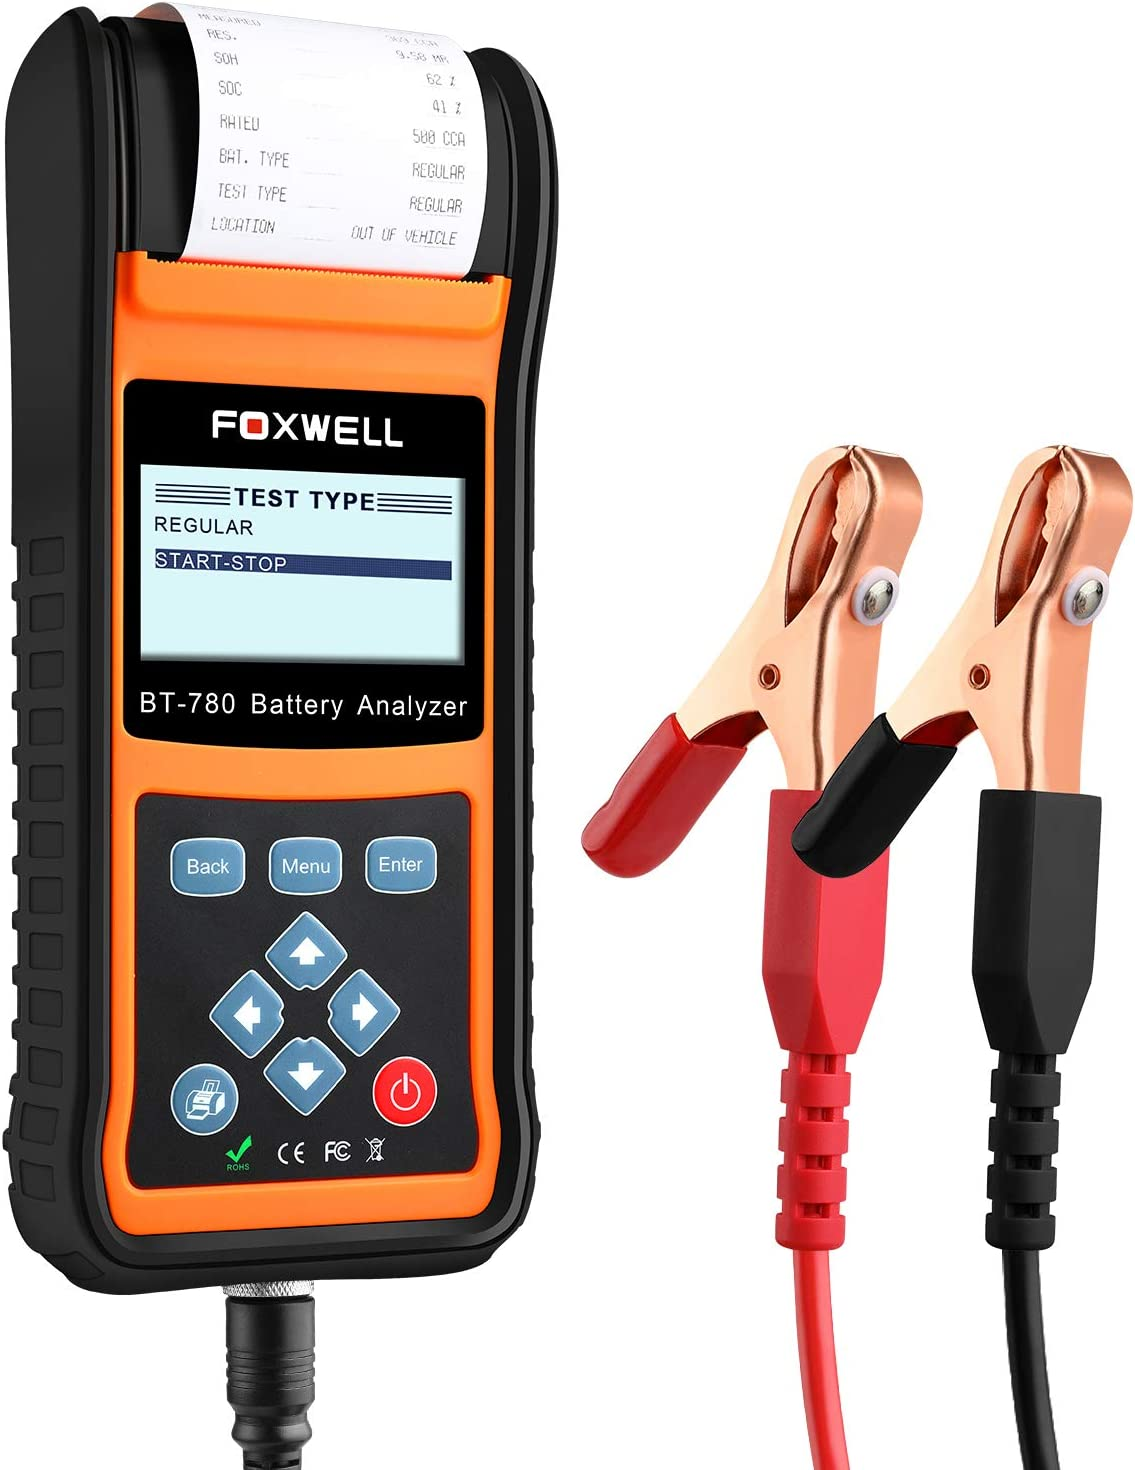 Foxwell Auto Battery Tester 12v 24v Car Battery Load Analyzer Starting And Charging System Test Tool Bt780 With Built In Thermal Printer